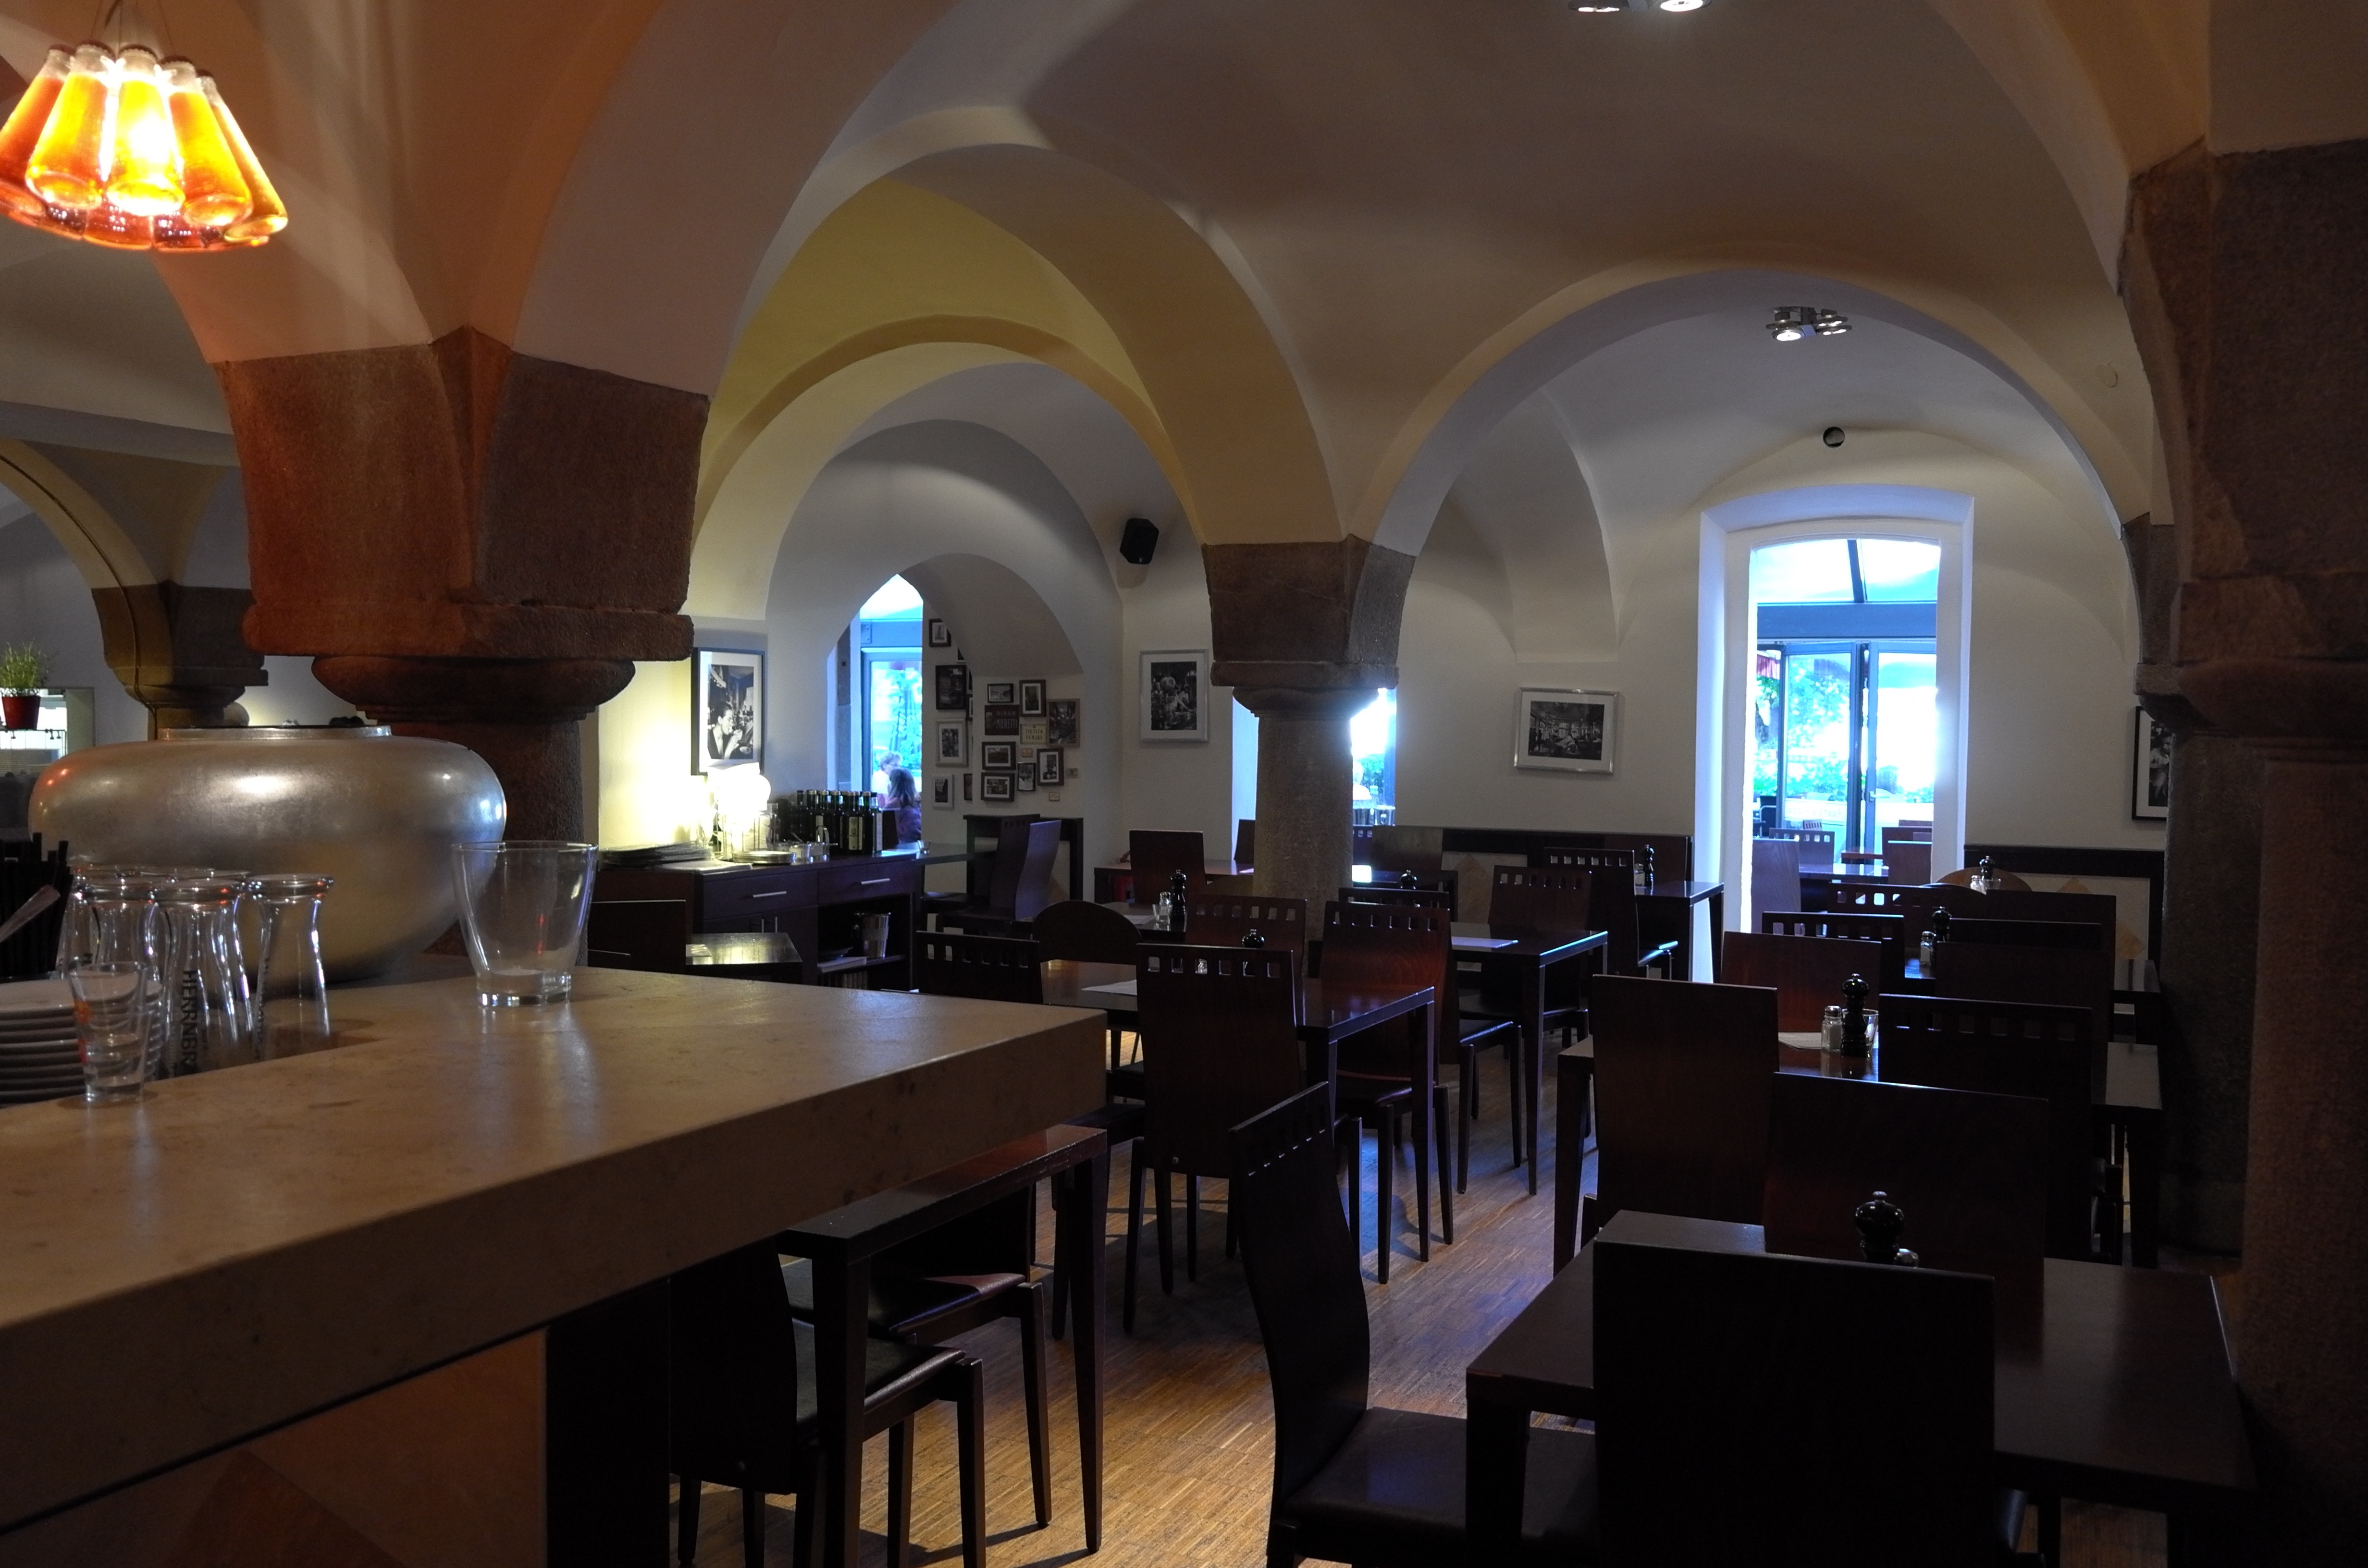 Laurin Pasta & Pizza in Straubing